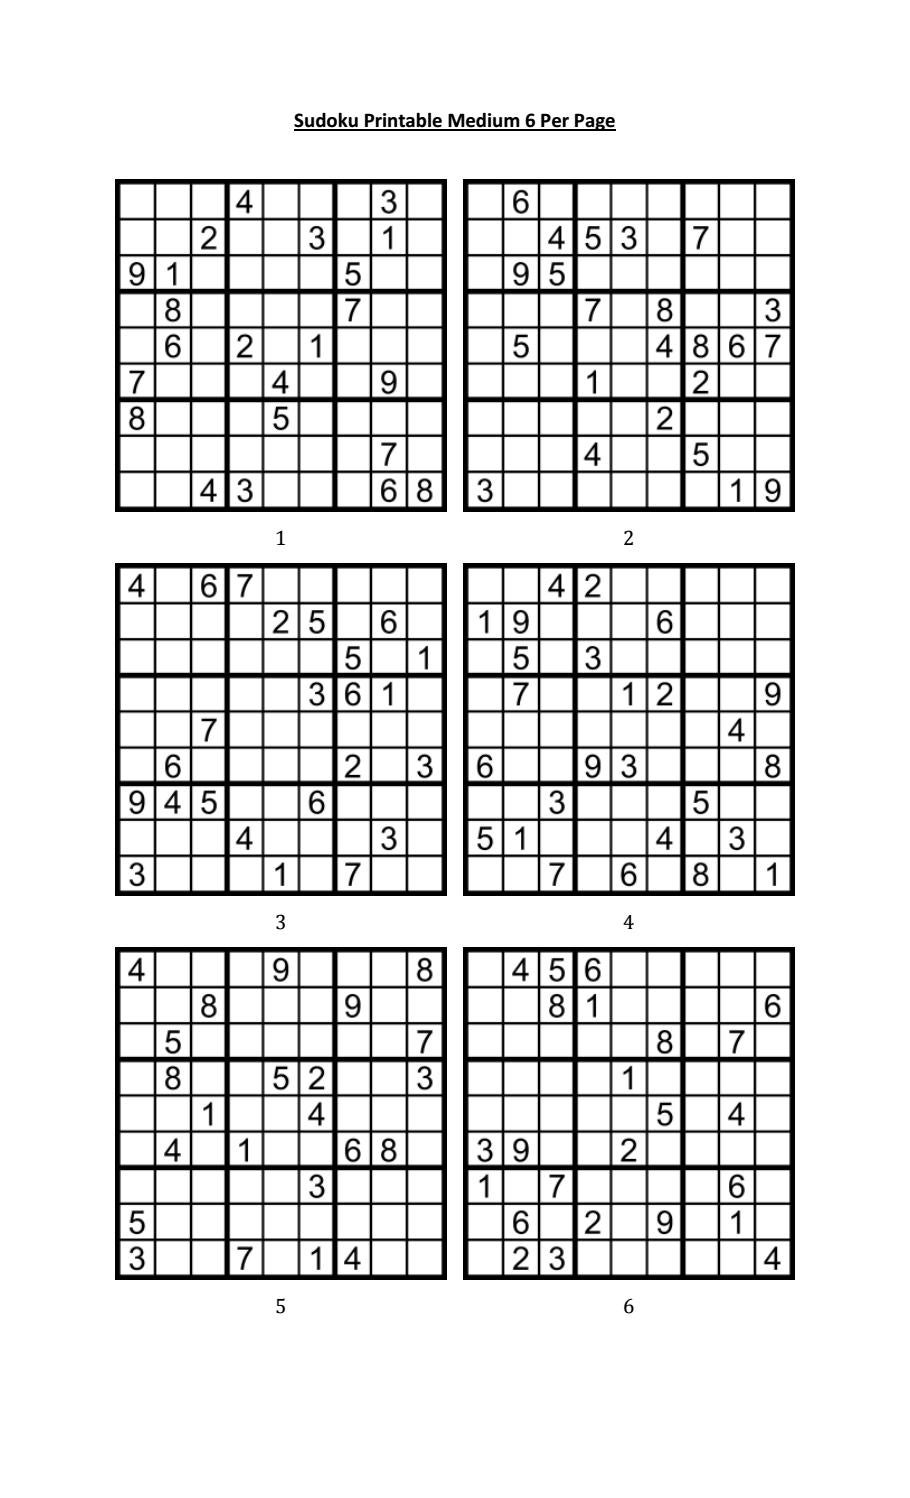 graphic regarding Printable Sudoku 4 Per Page called Sudoku printable medium 6 for each web page by way of Aaron Woodyear - issuu